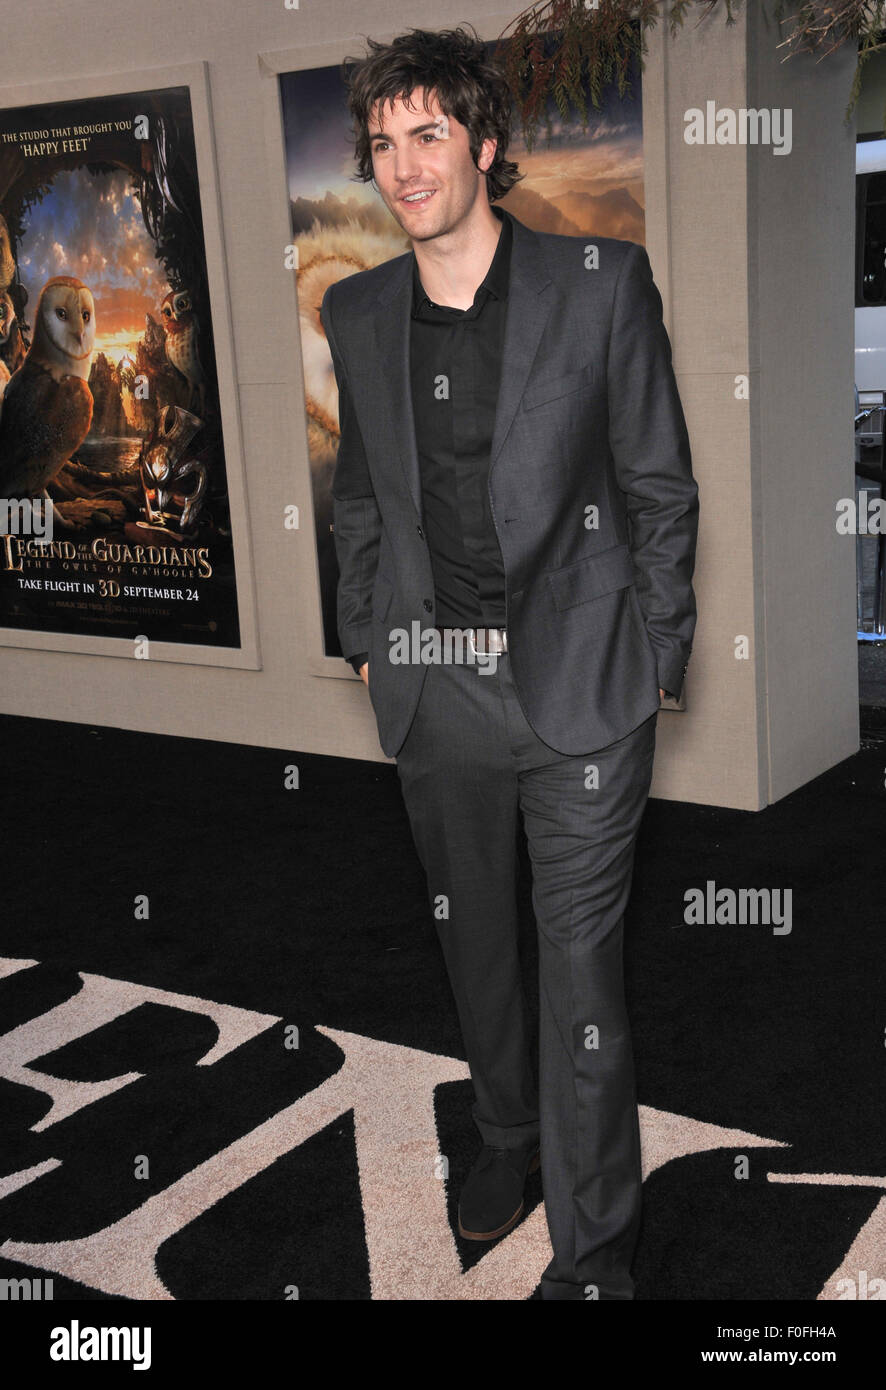 LOS ANGELES, CA - SEPTEMBER 19, 2010: Jim Sturgess at the world premiere of his new movie 'Legends of the Guardians: - Stock Image